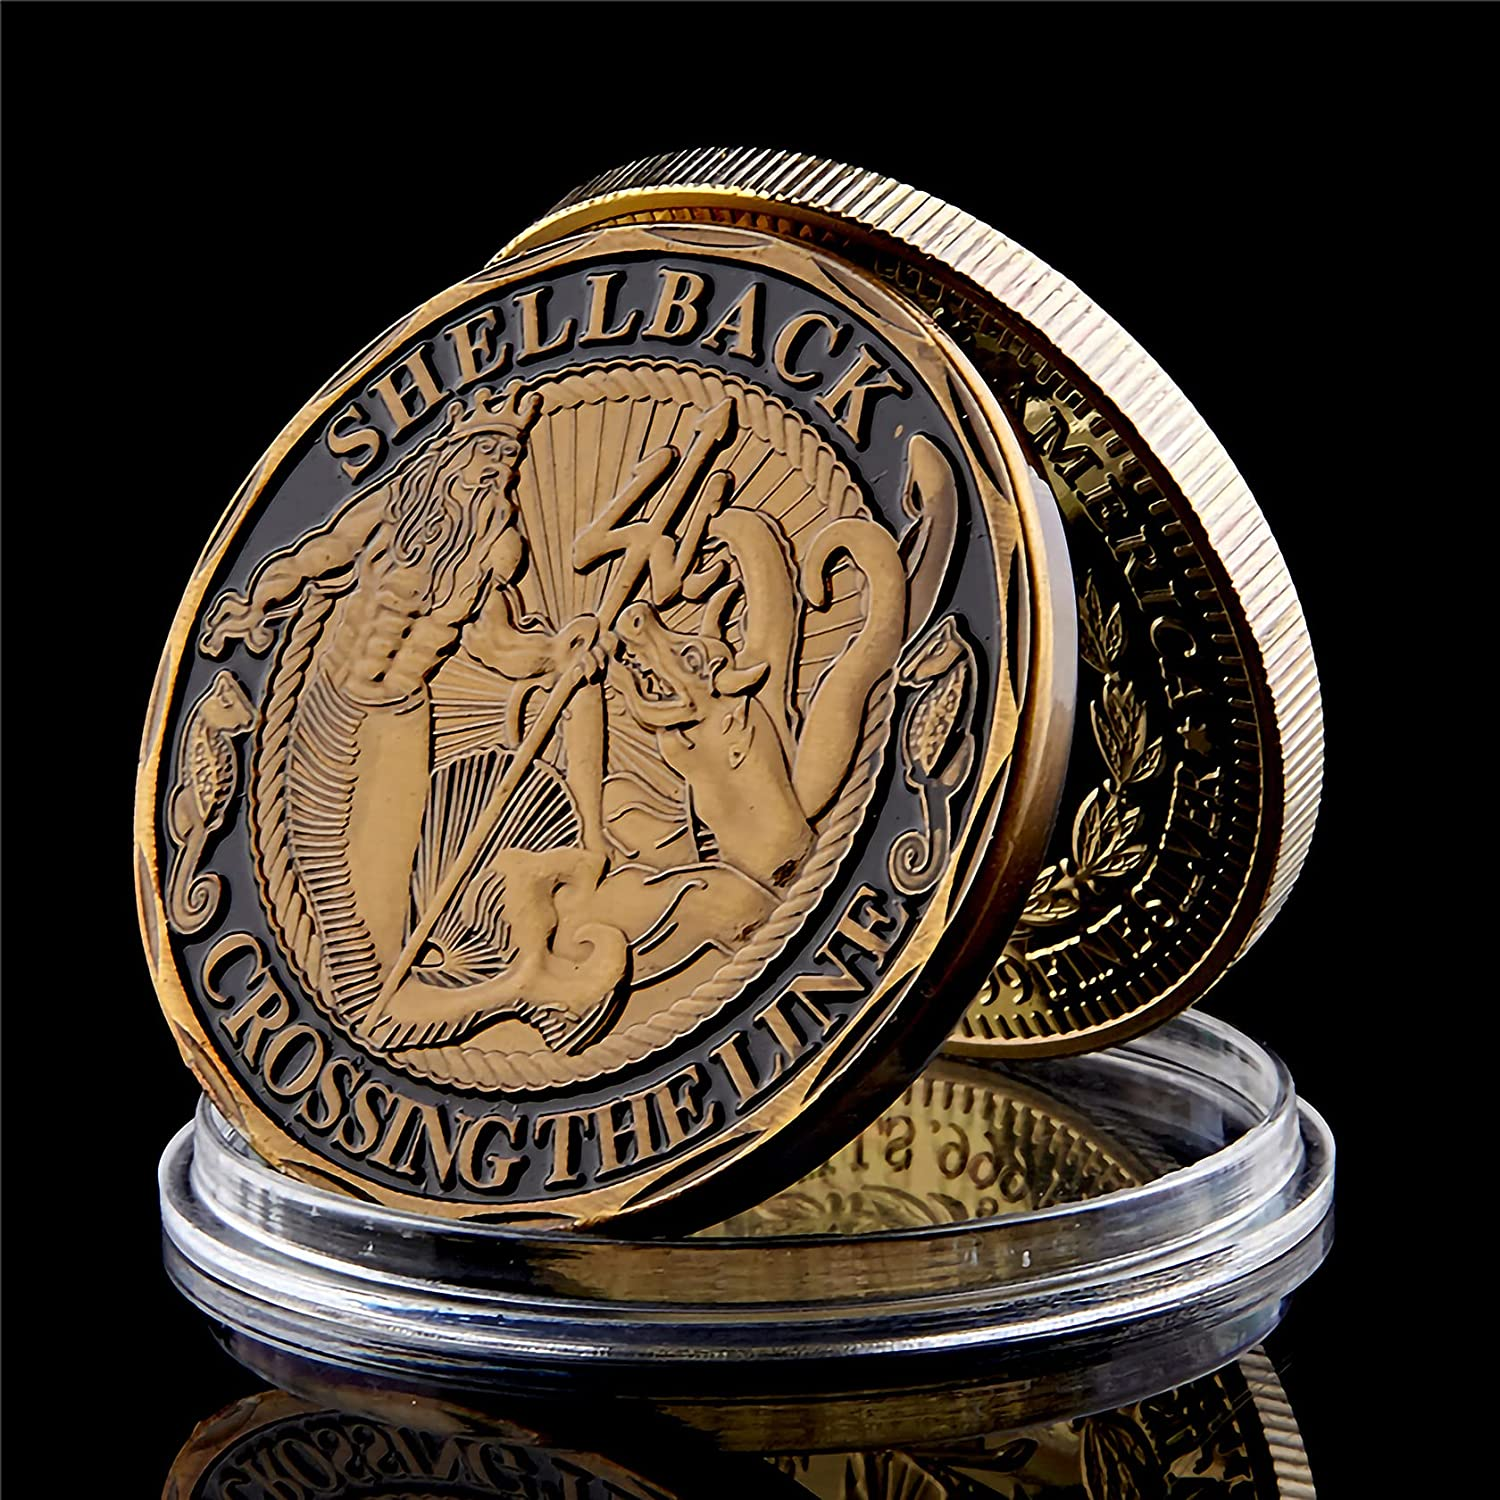 Challenge Coin New product type USA Navy Shellback Crossing Line US The service Sailor So